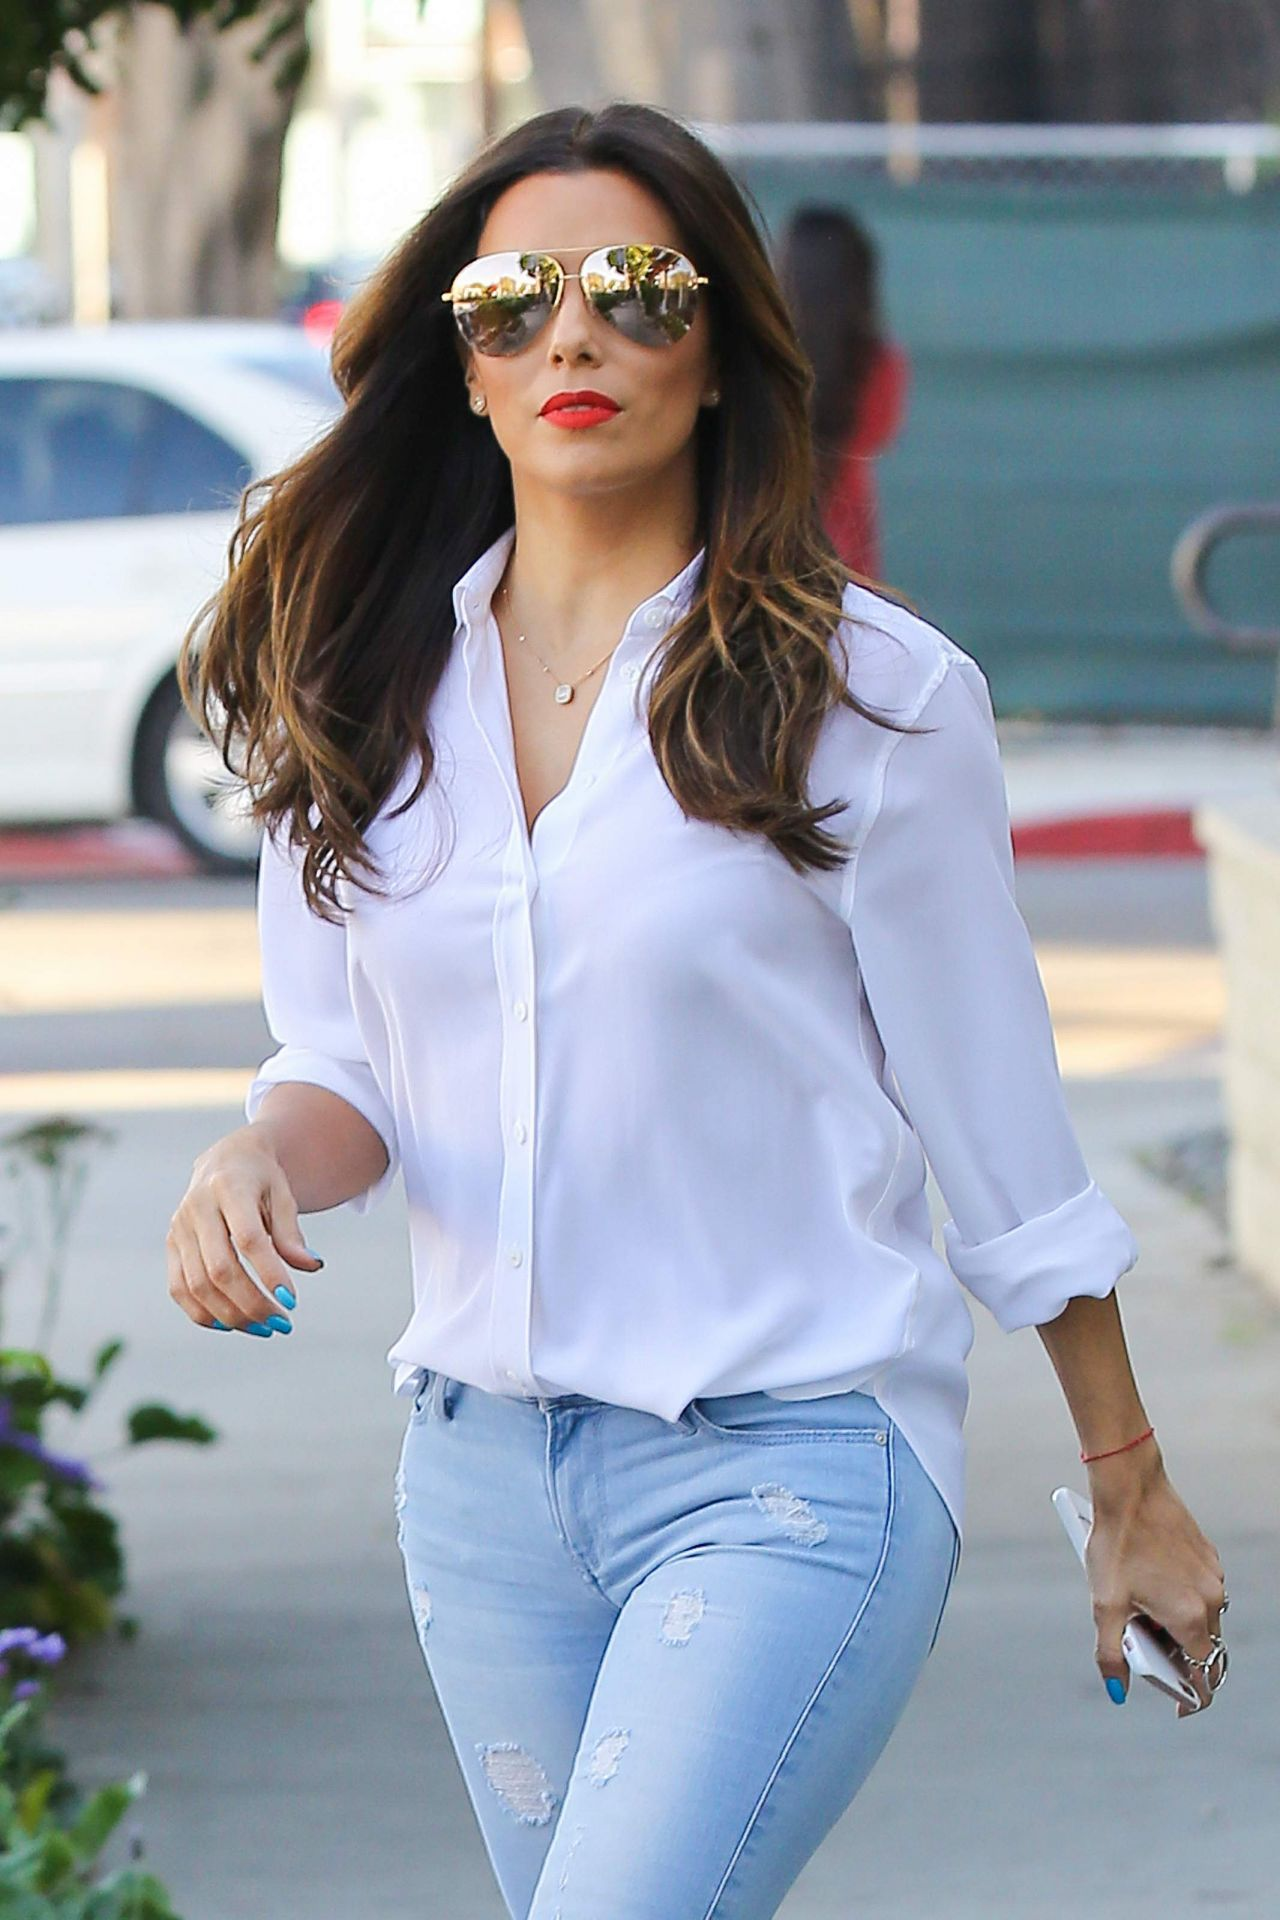 Eva Longoria Gets Her Hair Done at Ken Paves Salon in West Hollywood 3 ... Eva Longoria